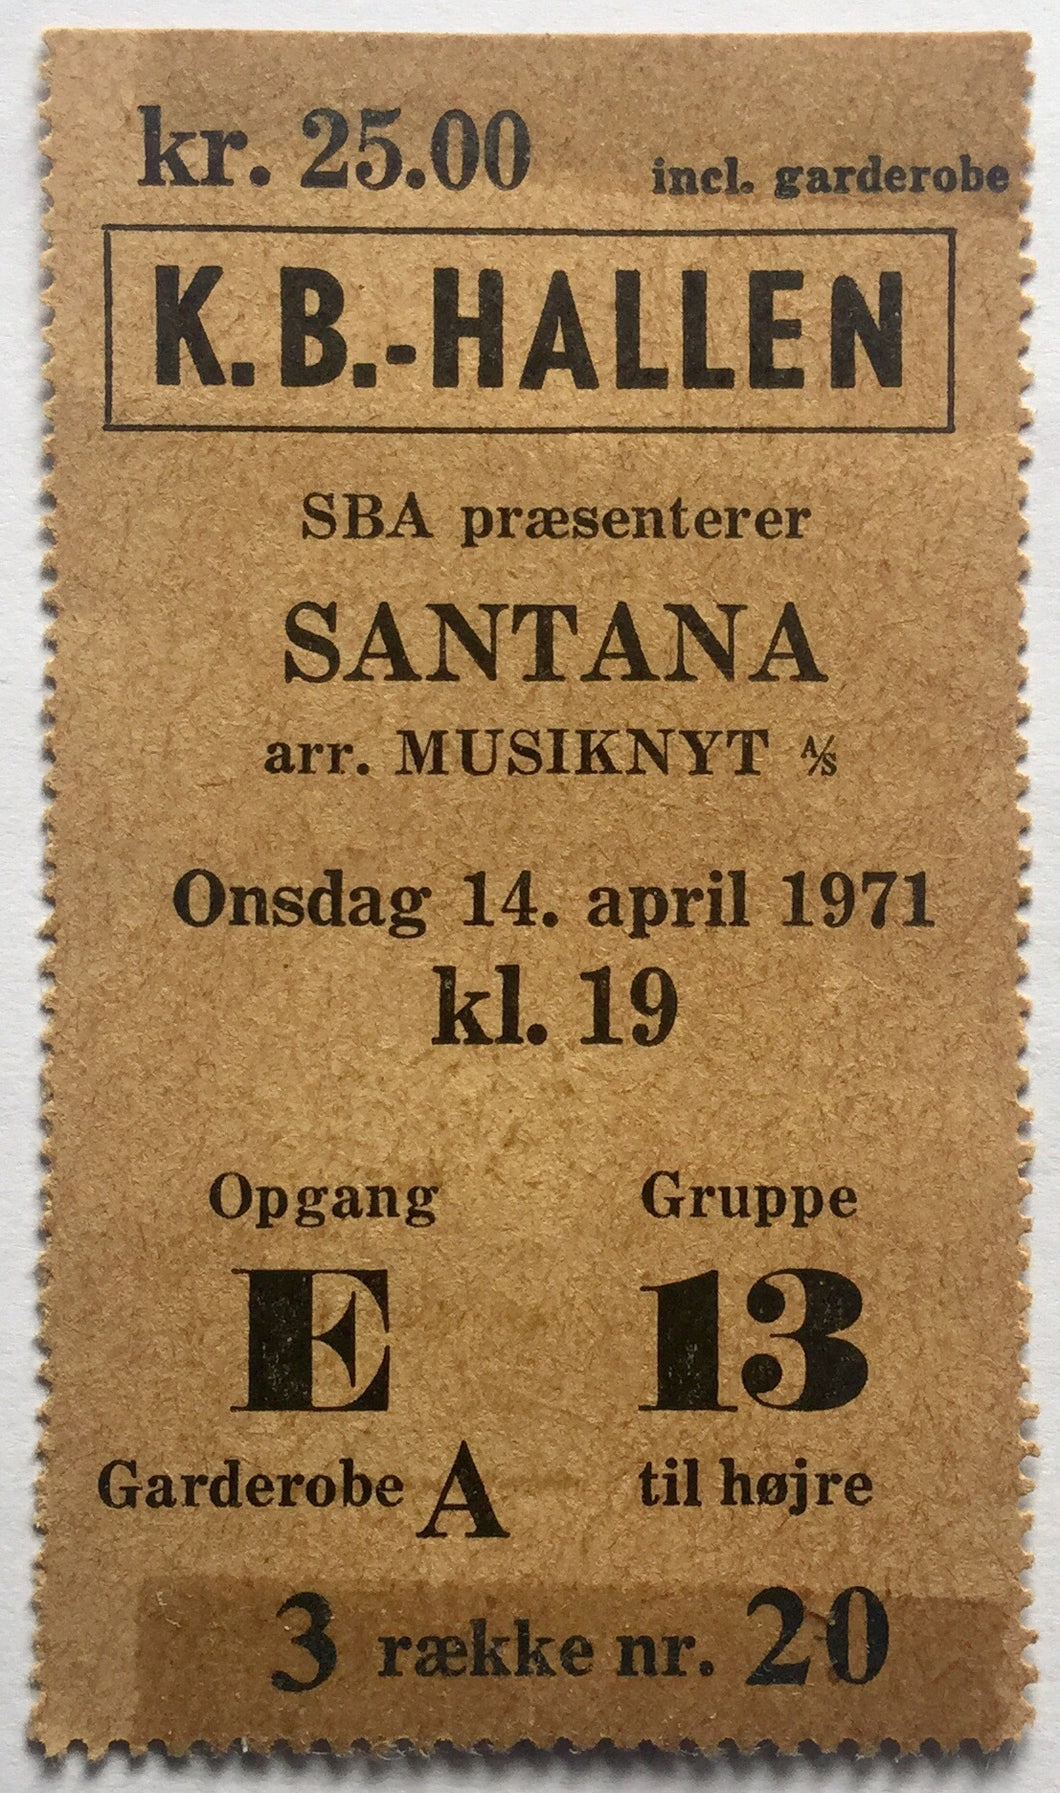 Santana Original Used Concert Ticket KB Hallen Copenhagen 14th April 1971